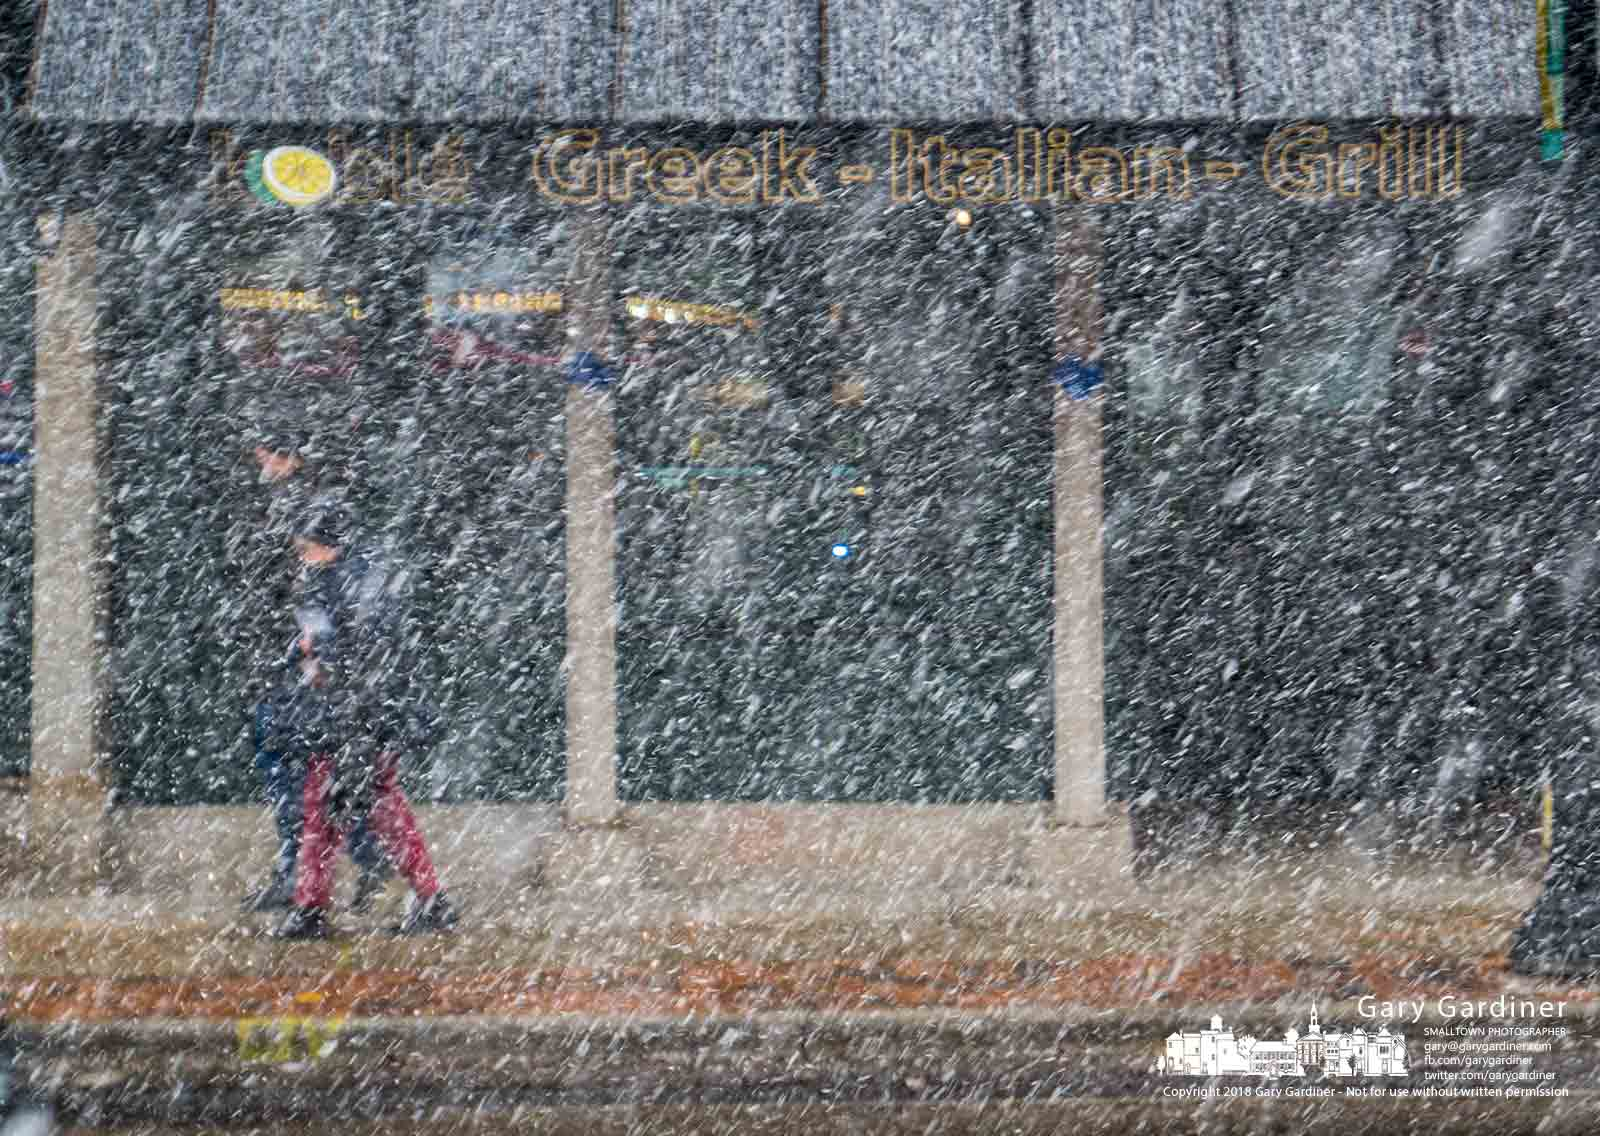 A strong afternoon snow squall obscures the view across State Steet where shoppers hurry to find shelter in stores and their vehicles. My Final Photo for March 7, 2018.